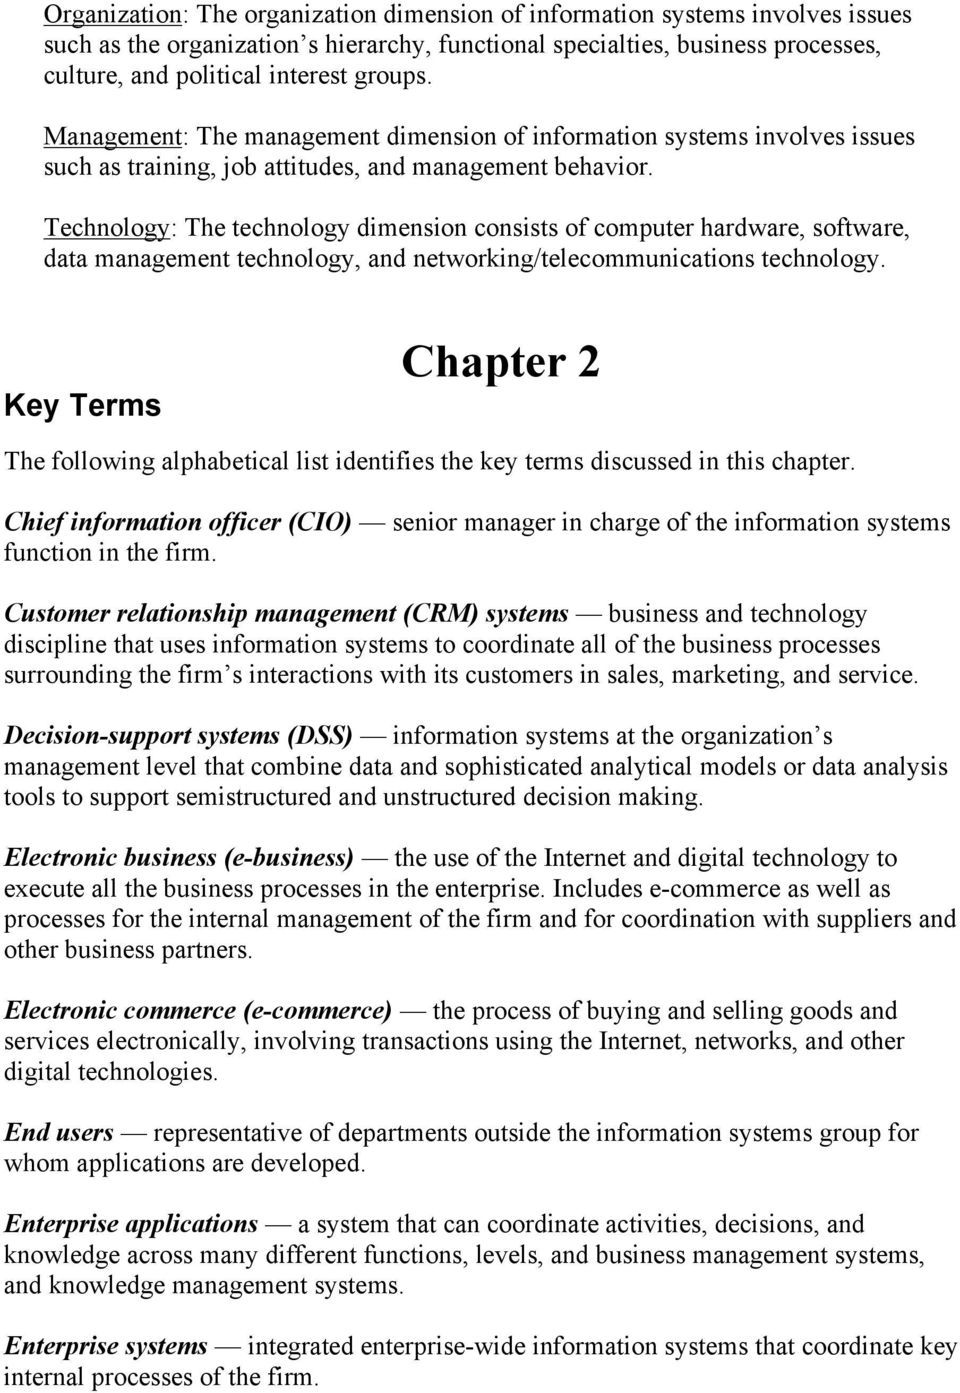 Technology: The technology dimension consists of computer hardware, software, data management technology, and networking/telecommunications technology.